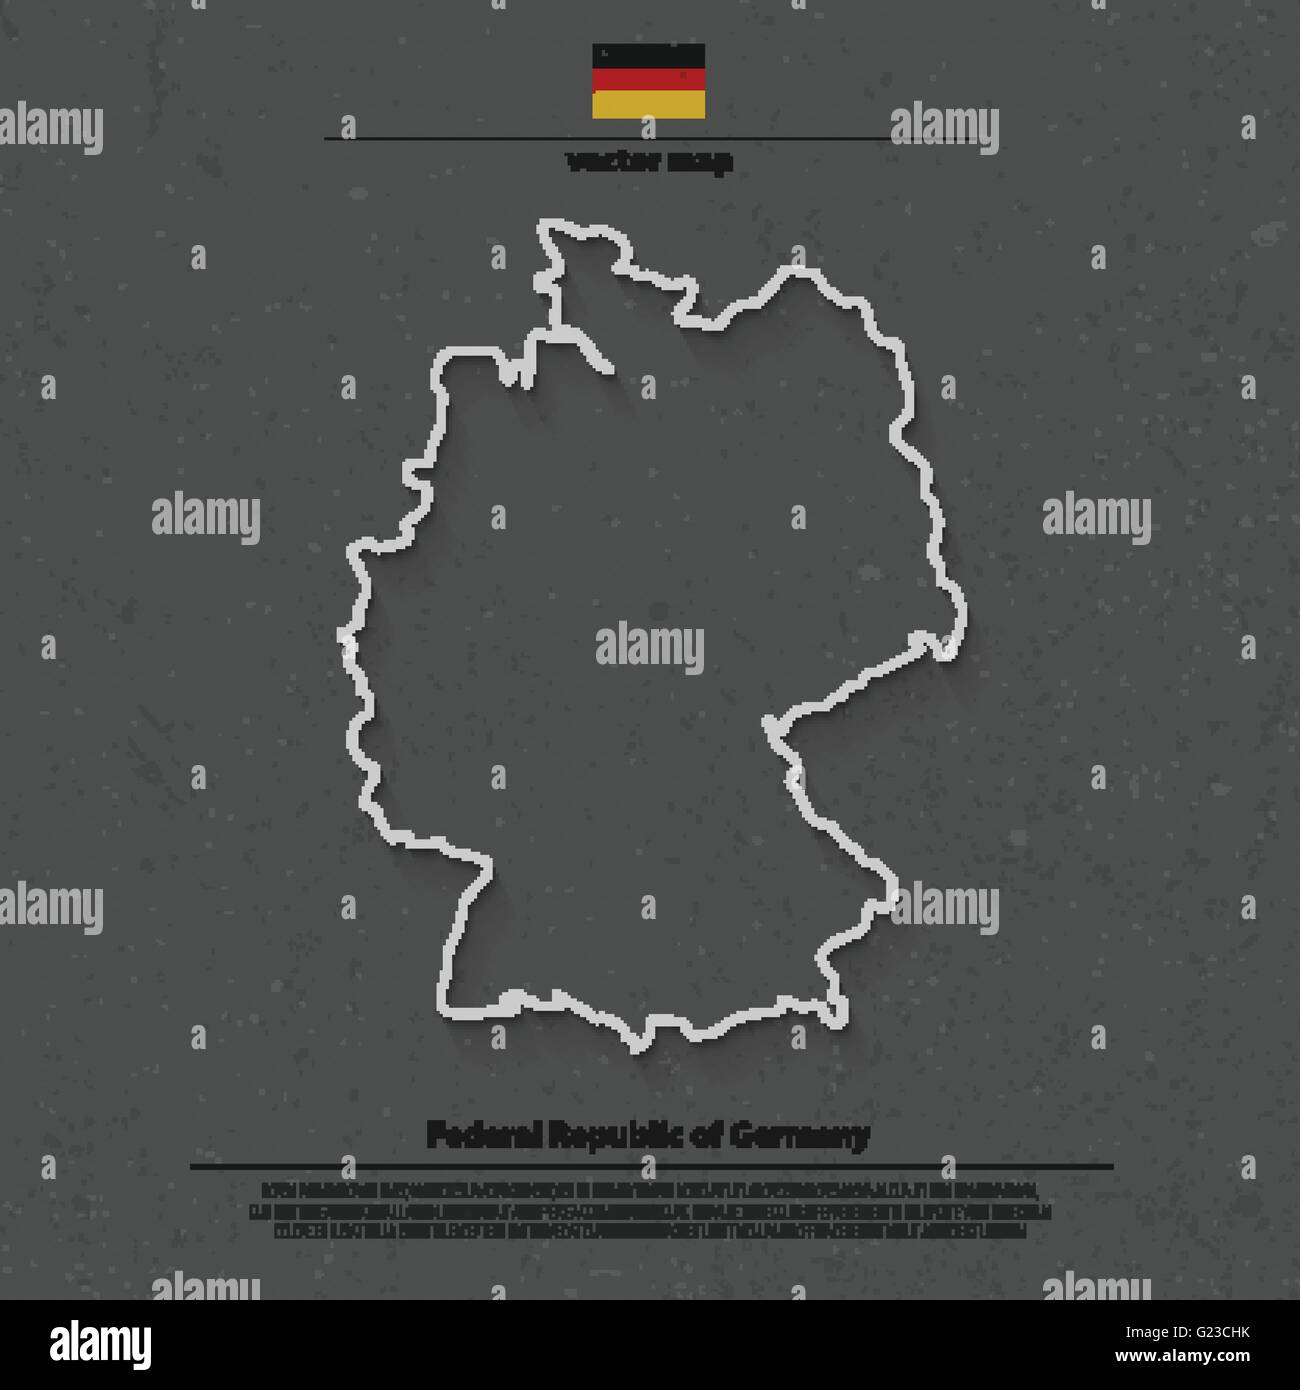 Federal Republic of Germany map outline and official flag icon over grunge background. vector German political map - Stock Vector